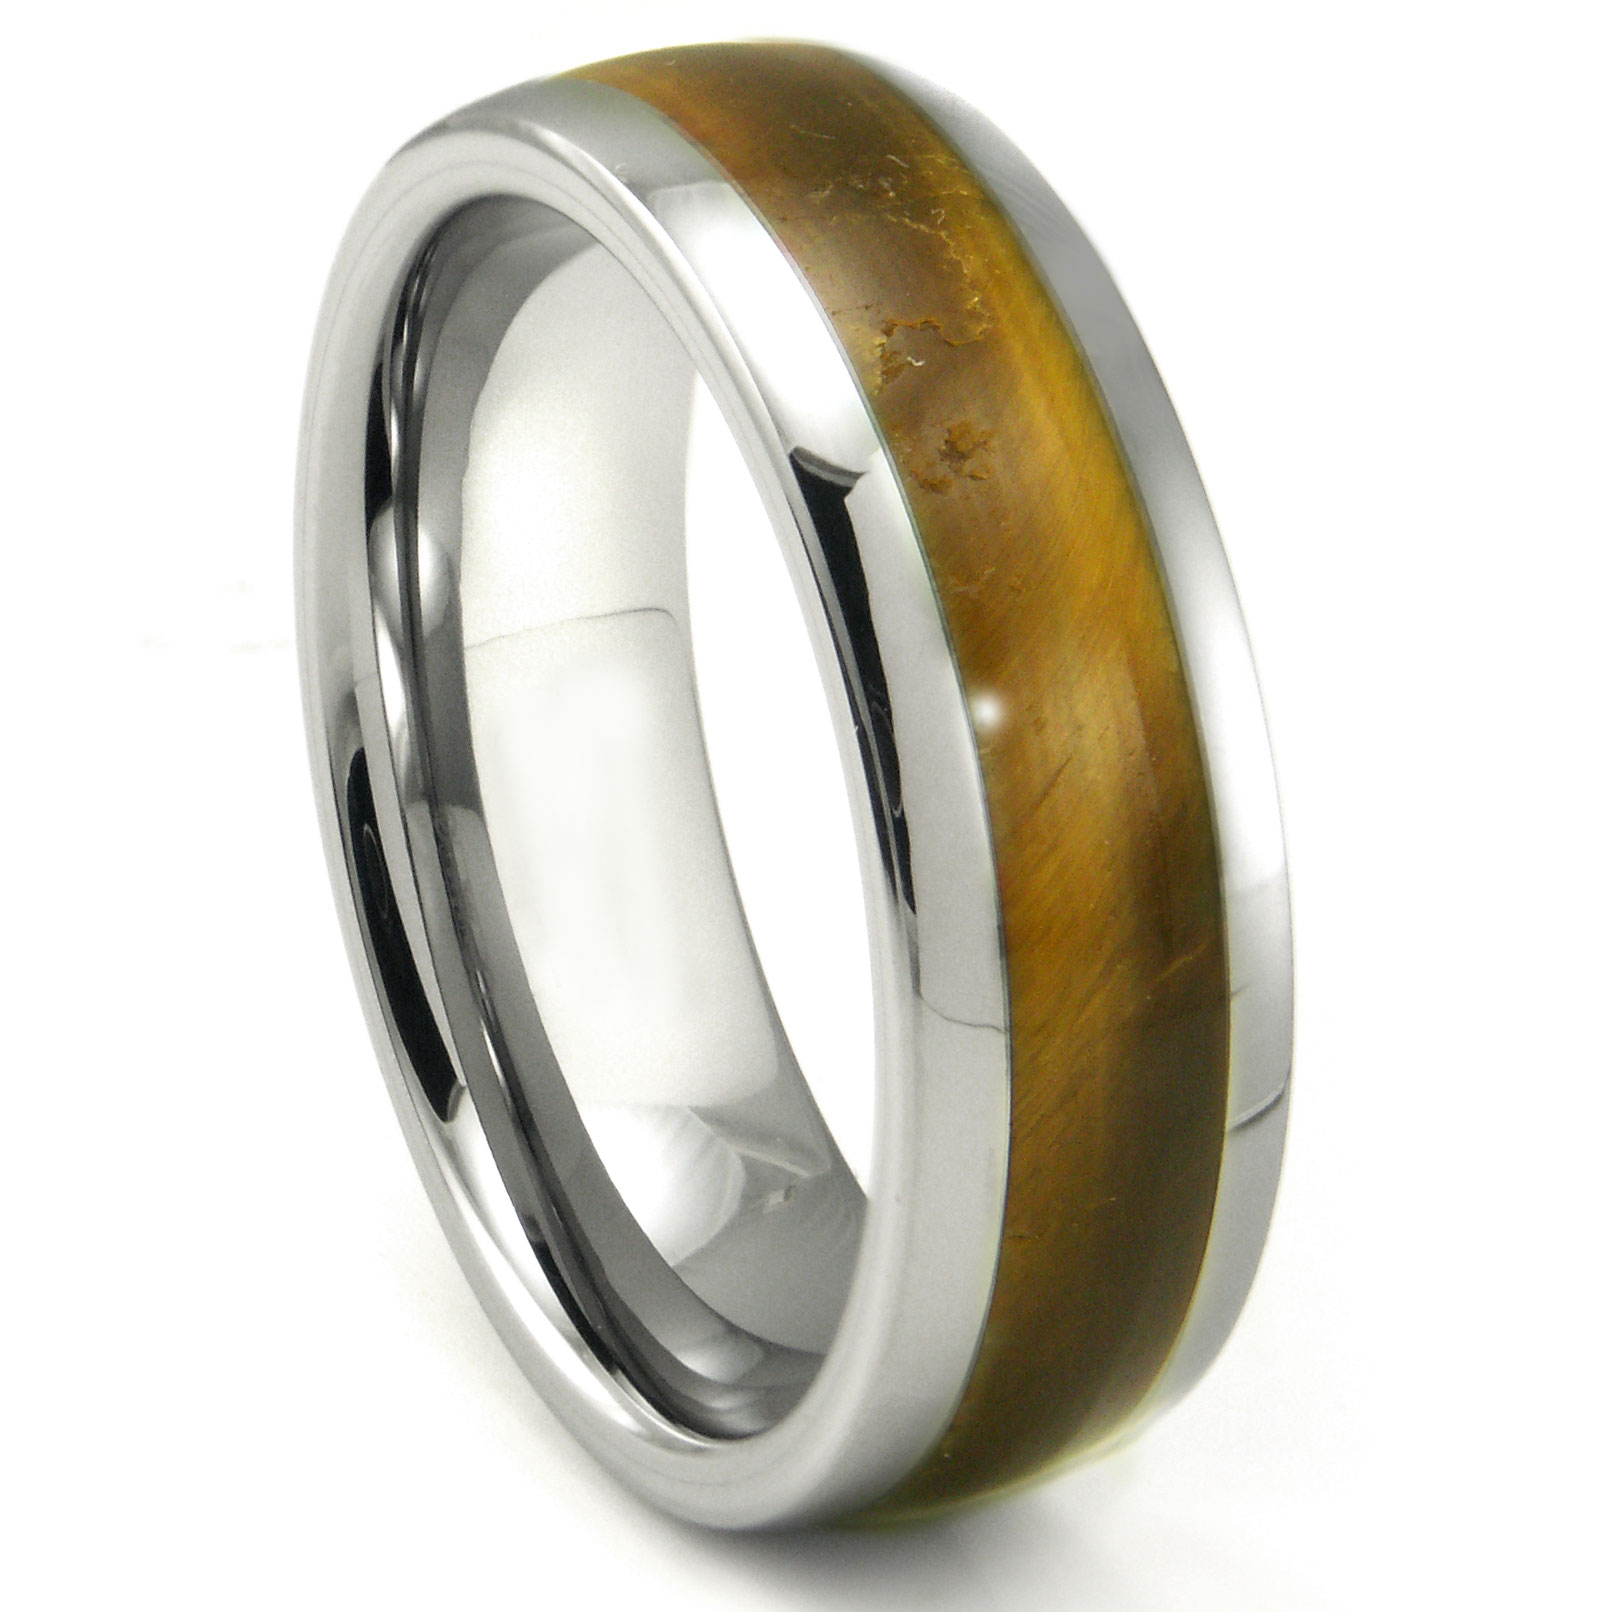 tigers eye kauppi finish ring my finnish sterling img rings silver designer tiger modern elis products midcentury